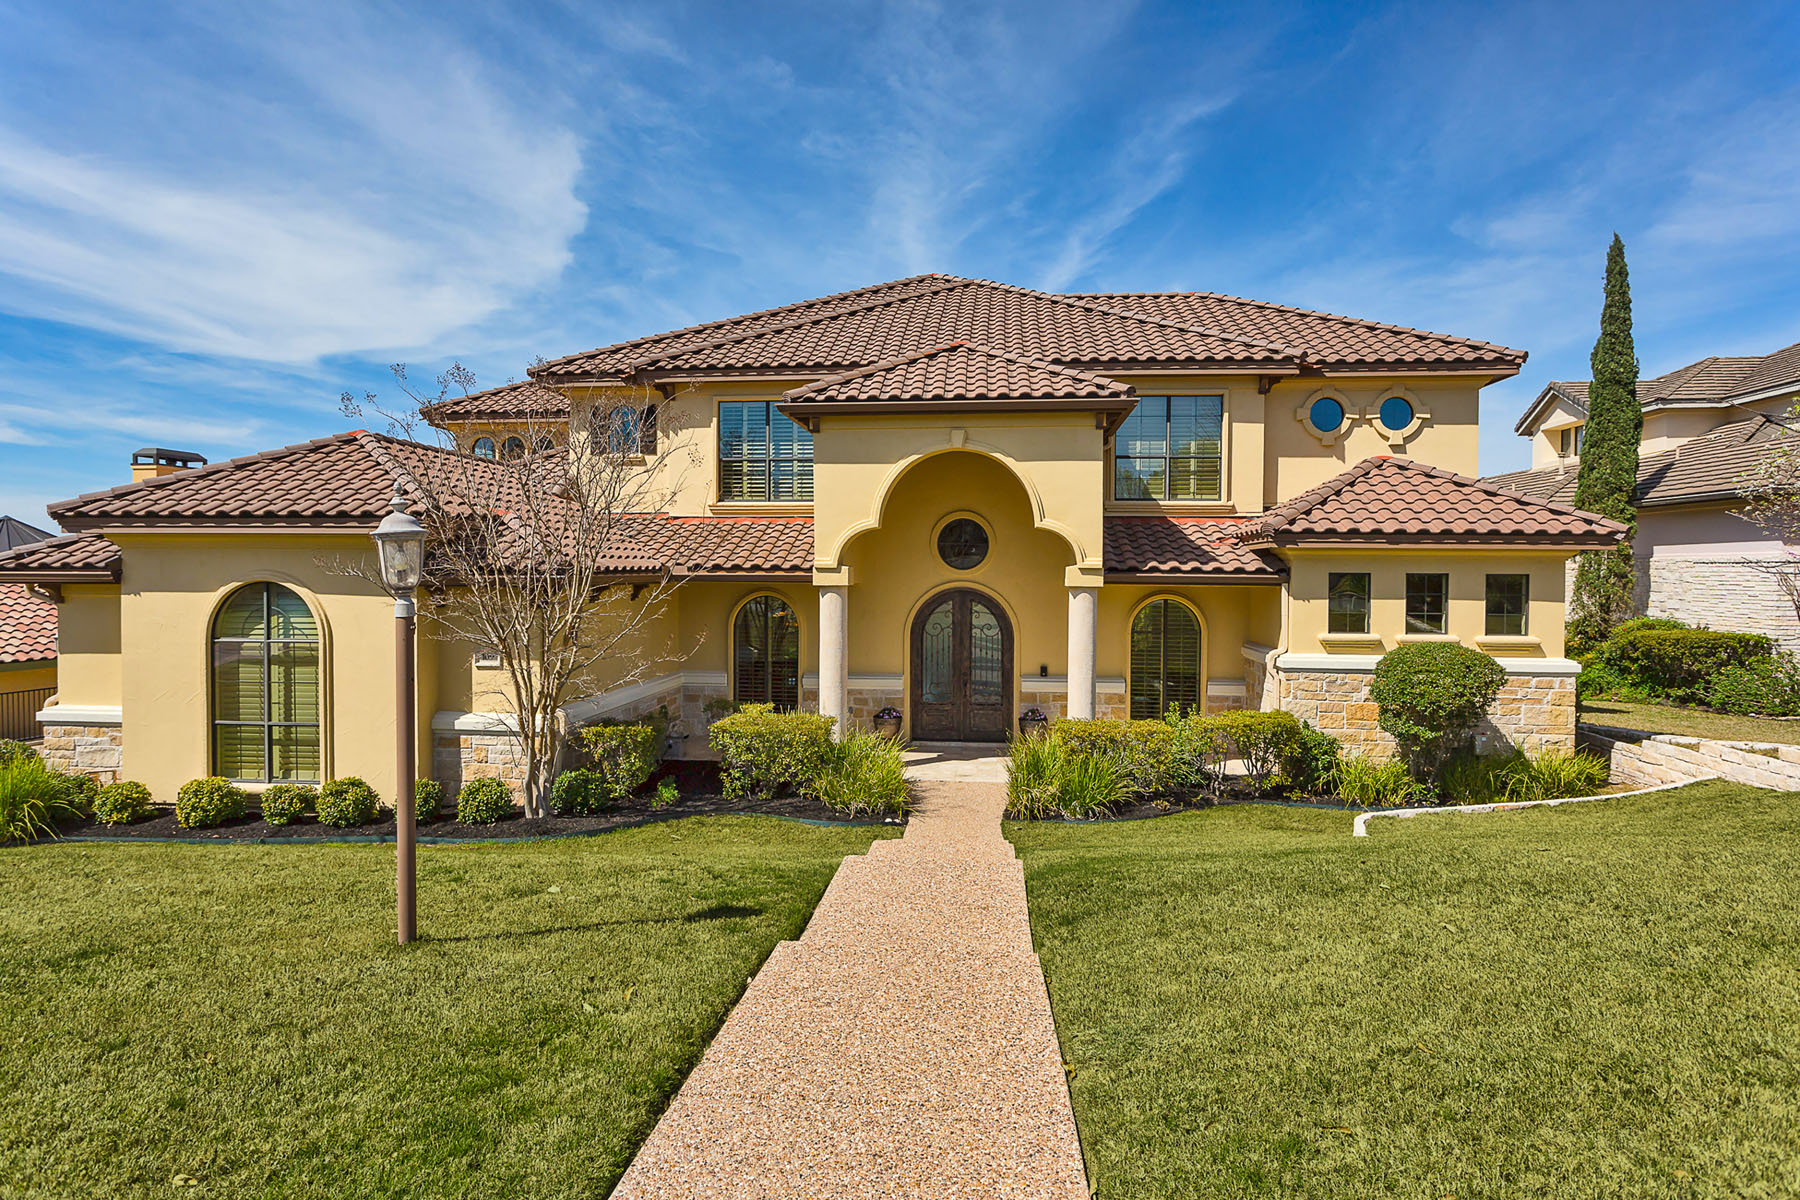 Moradia para Venda às An Entertainer's Dream Home! 109 Neville Wood Ct Austin, Texas, 78738 Estados Unidos